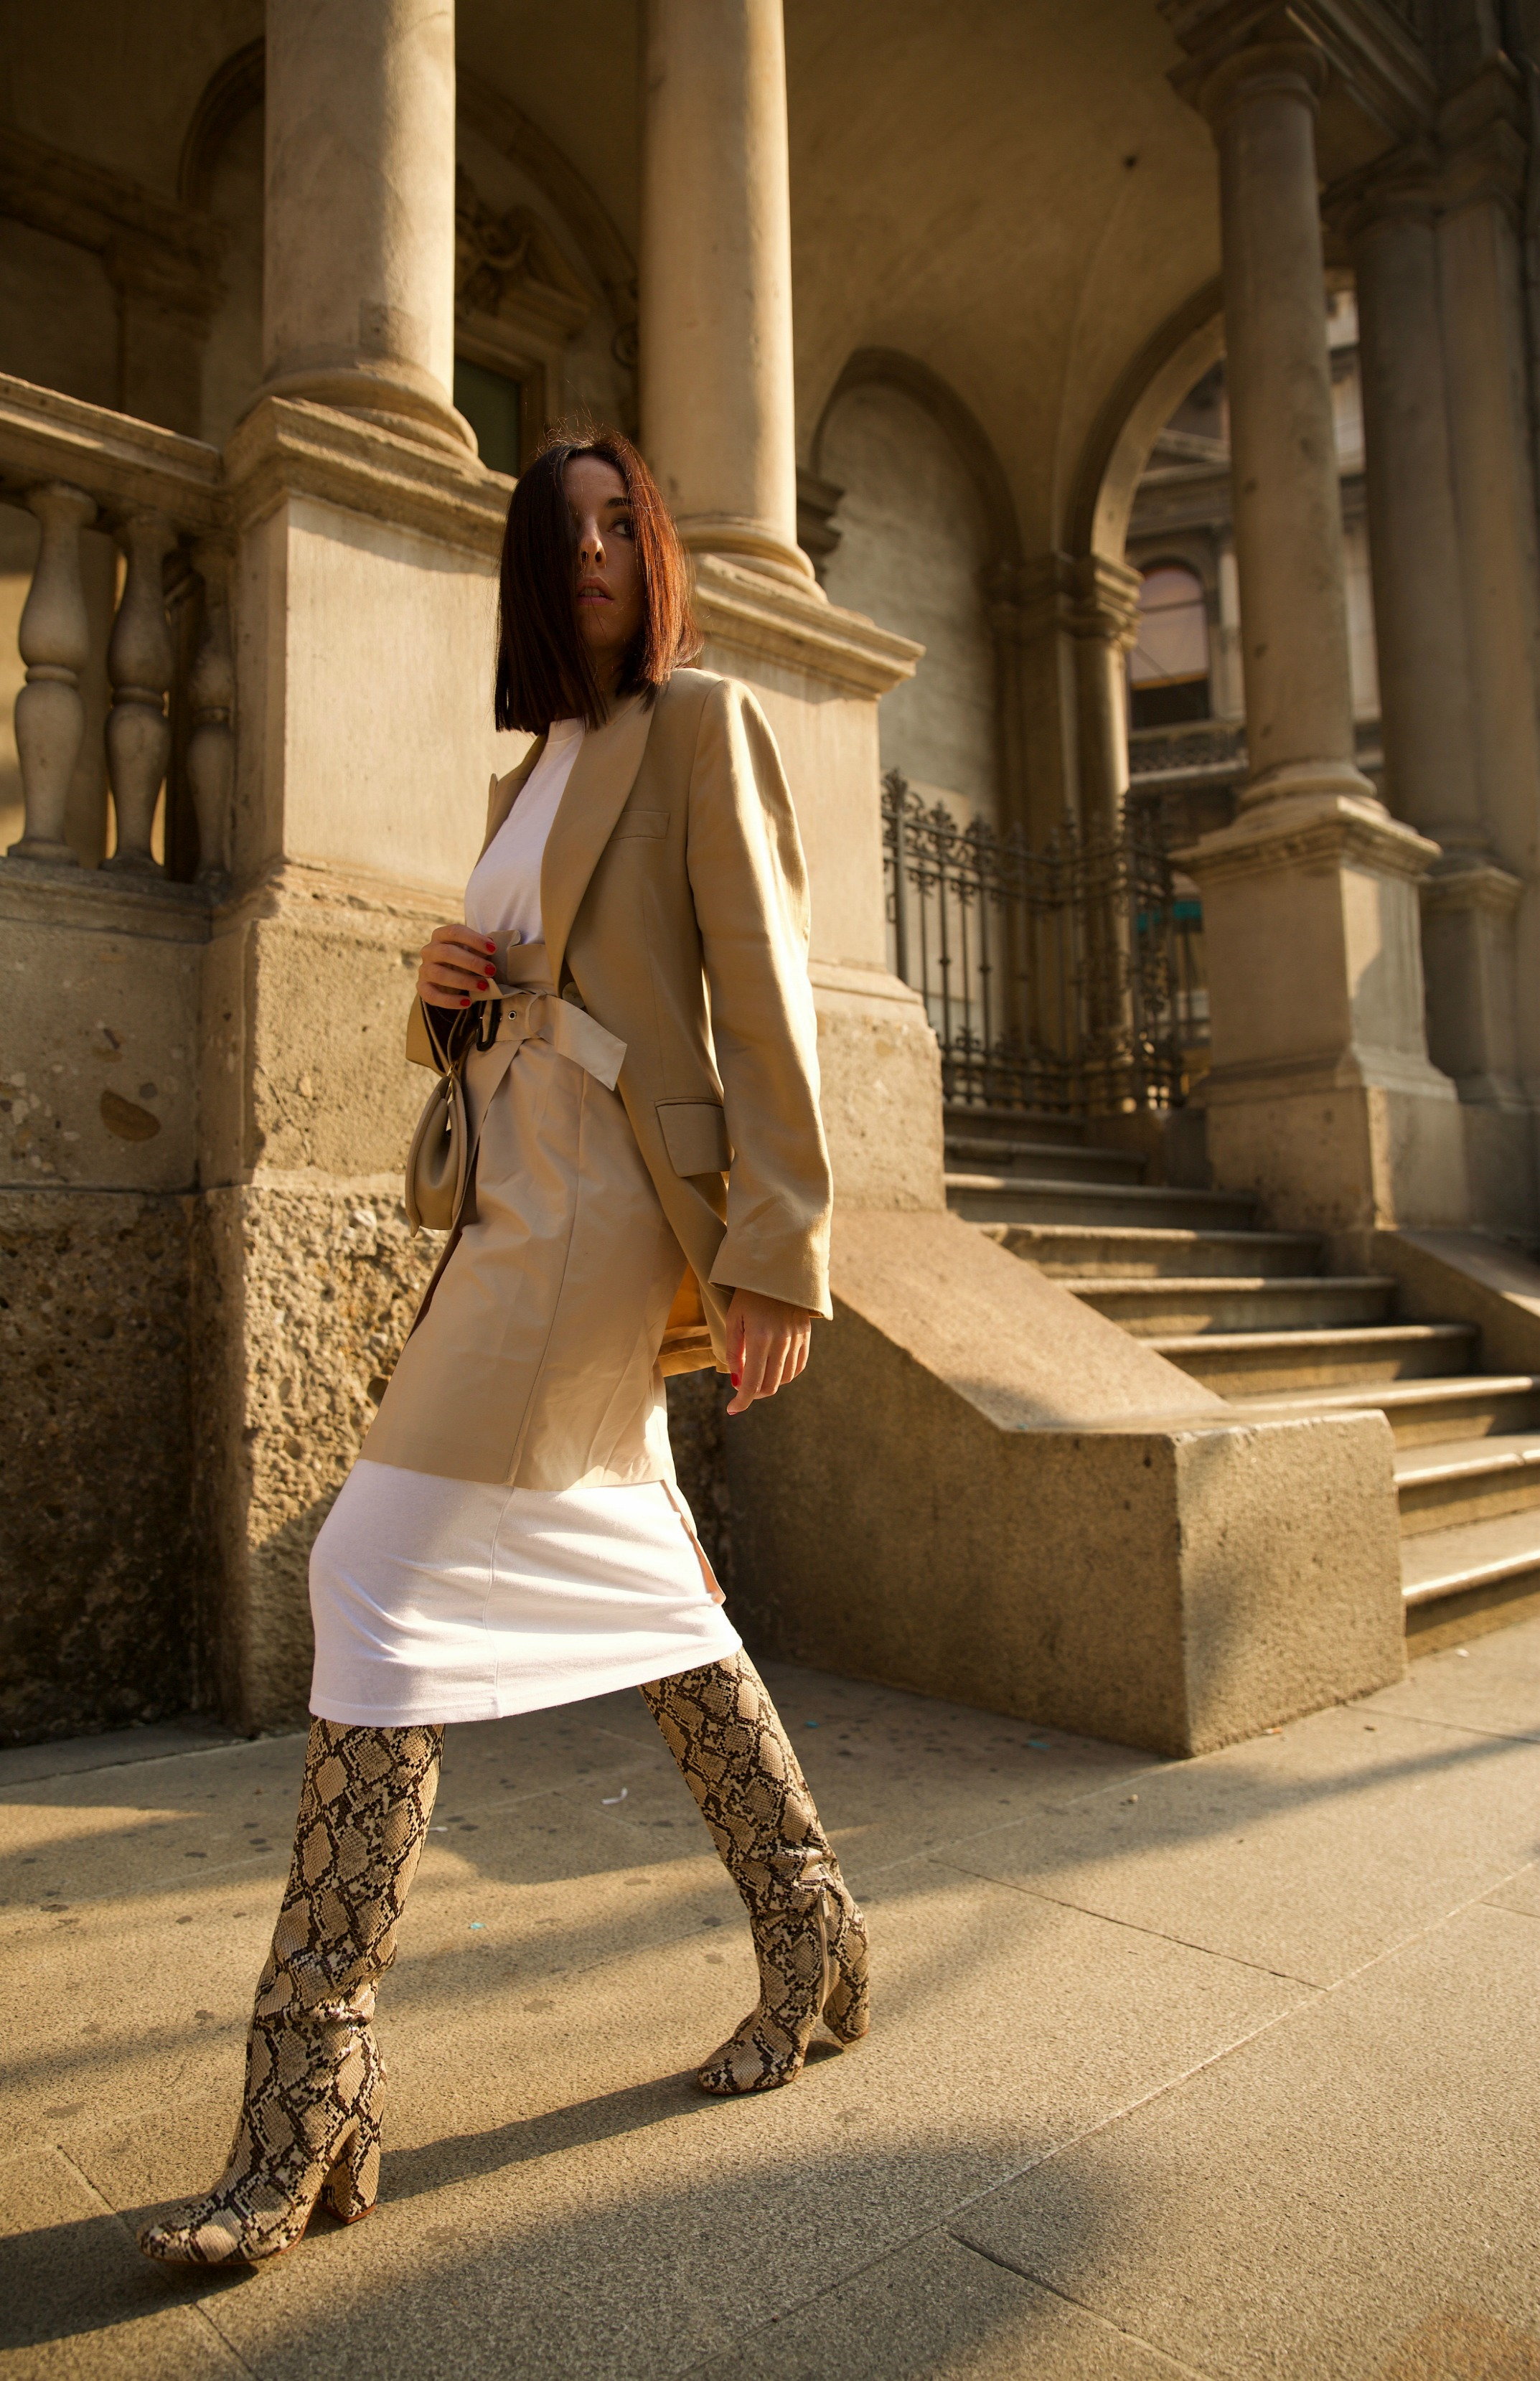 fashion editorial, elisa bellino, fashion blogger italiane 2019, fashion blog italia 2019, beige aesthetics, minimal style outfit, luxury blogger milano 2019, beige aesthetic